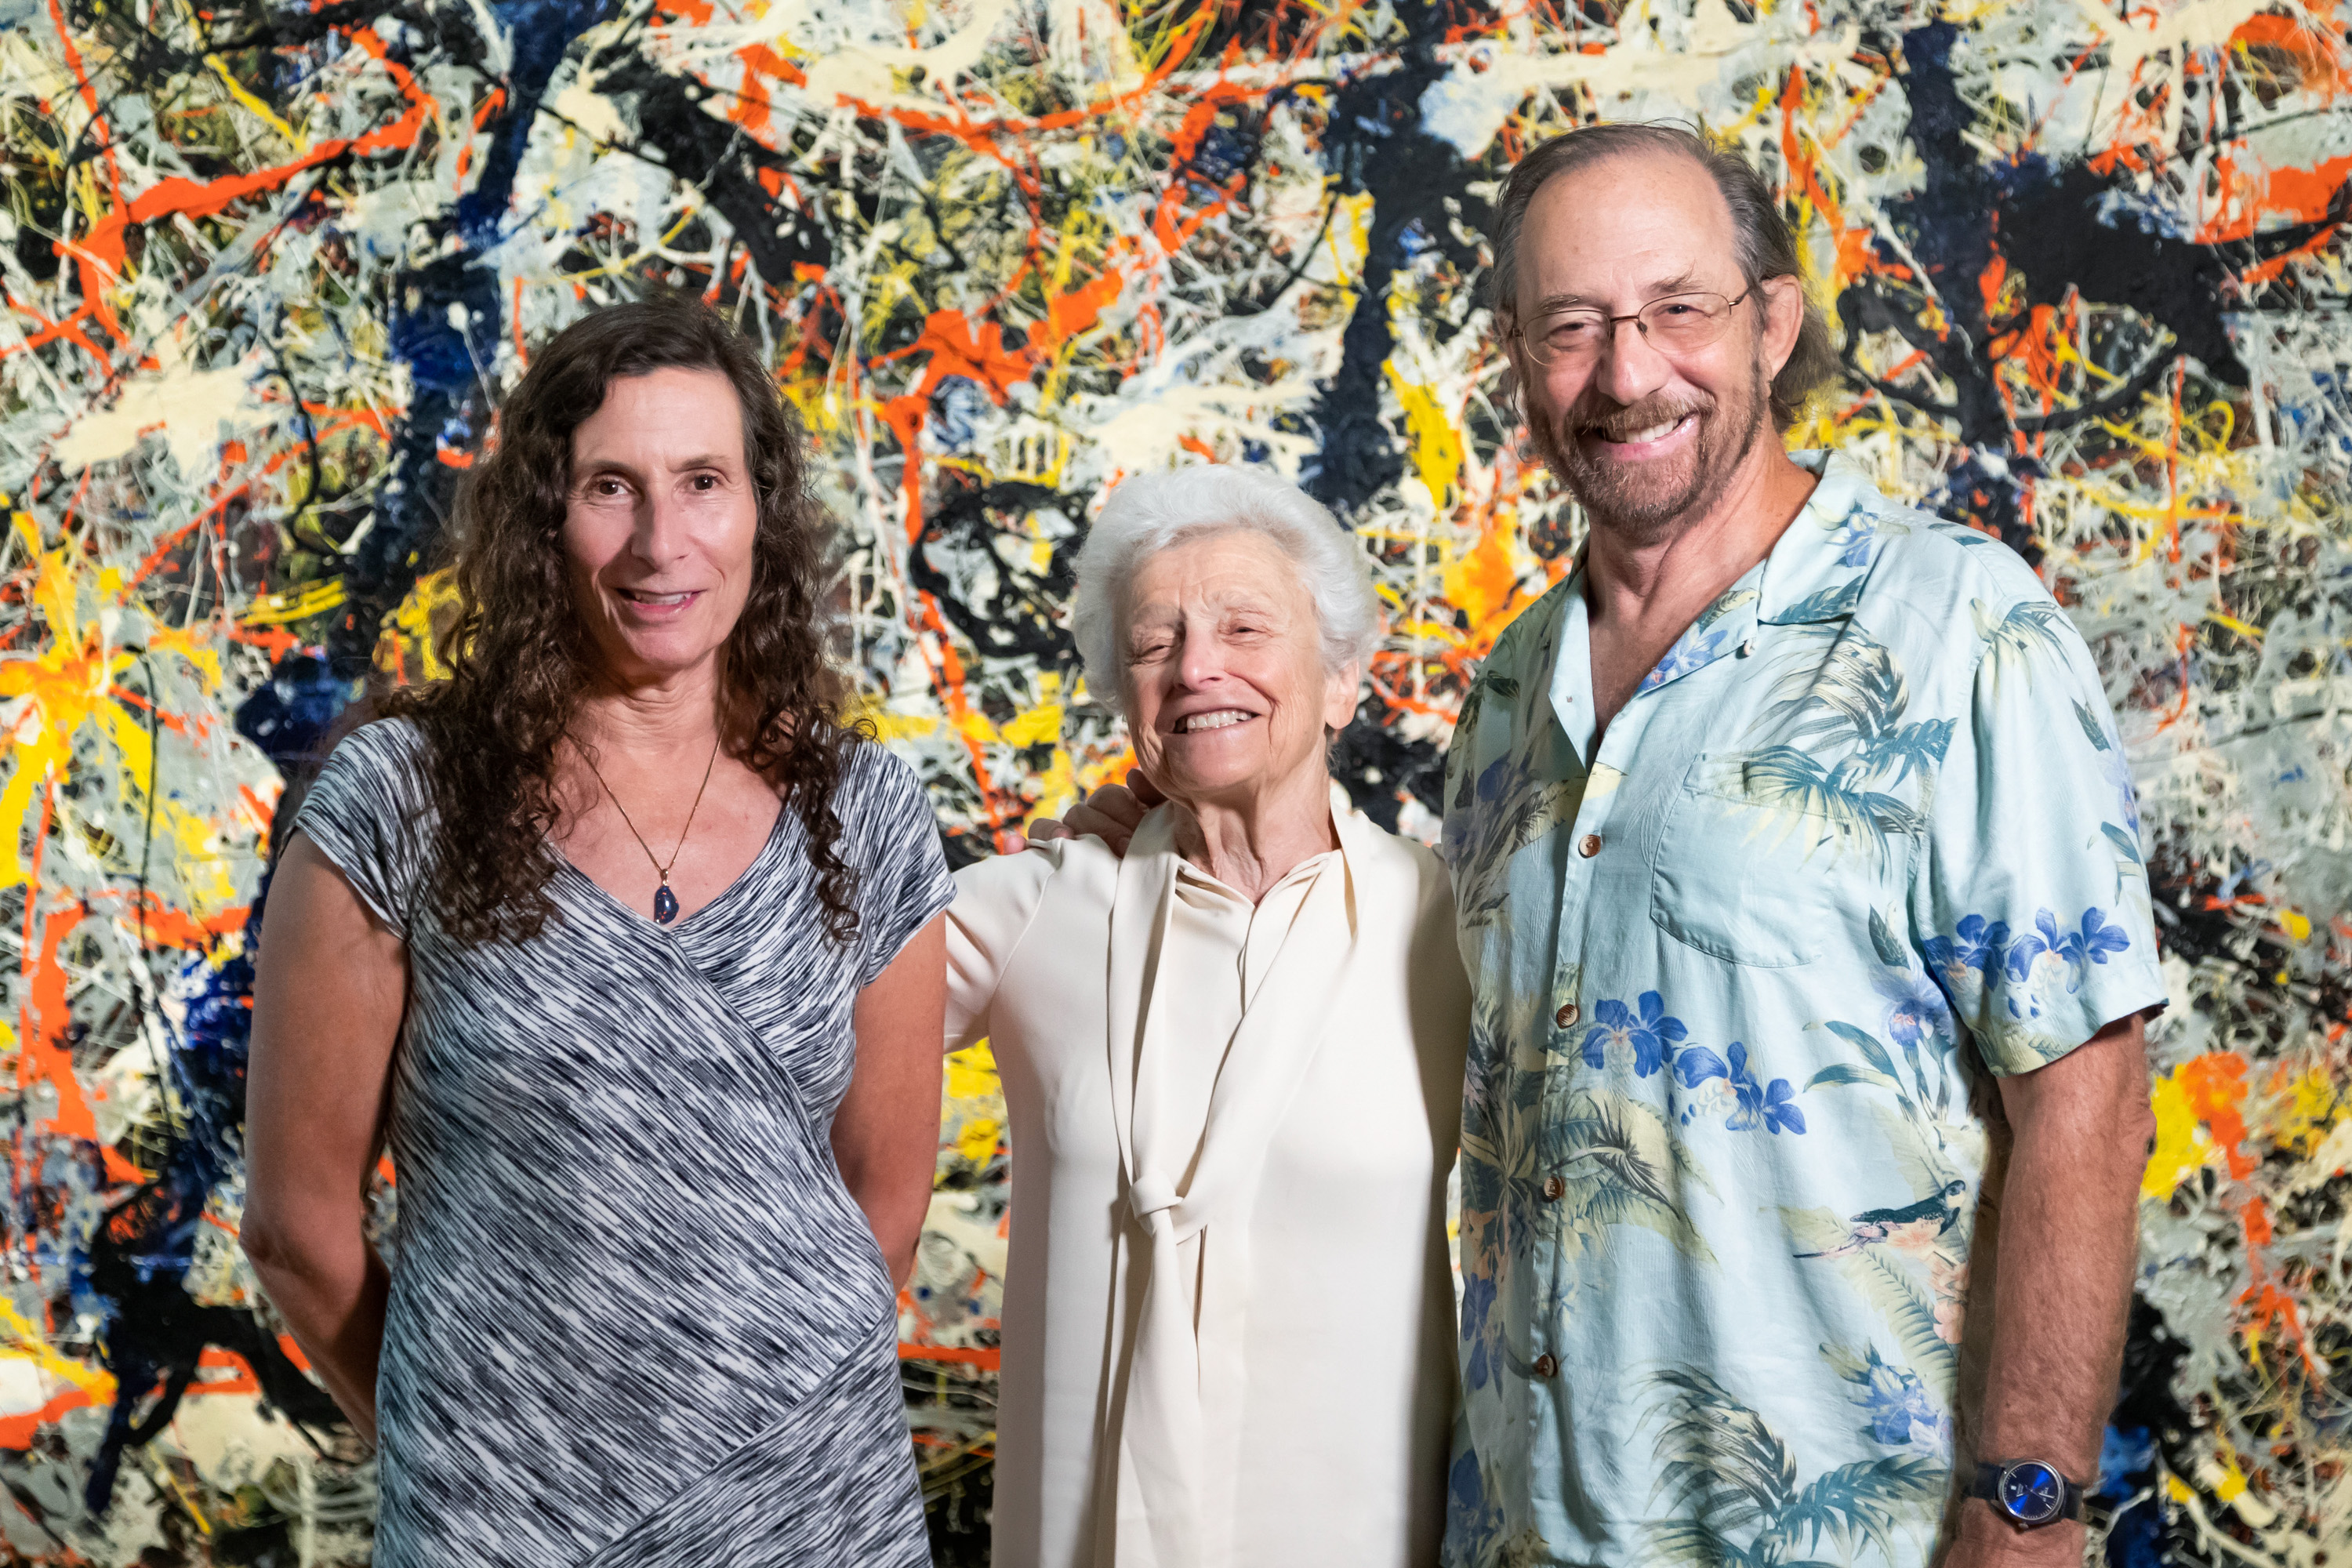 The Heller family visited Blue poles at the National Gallery of Australia in 2015